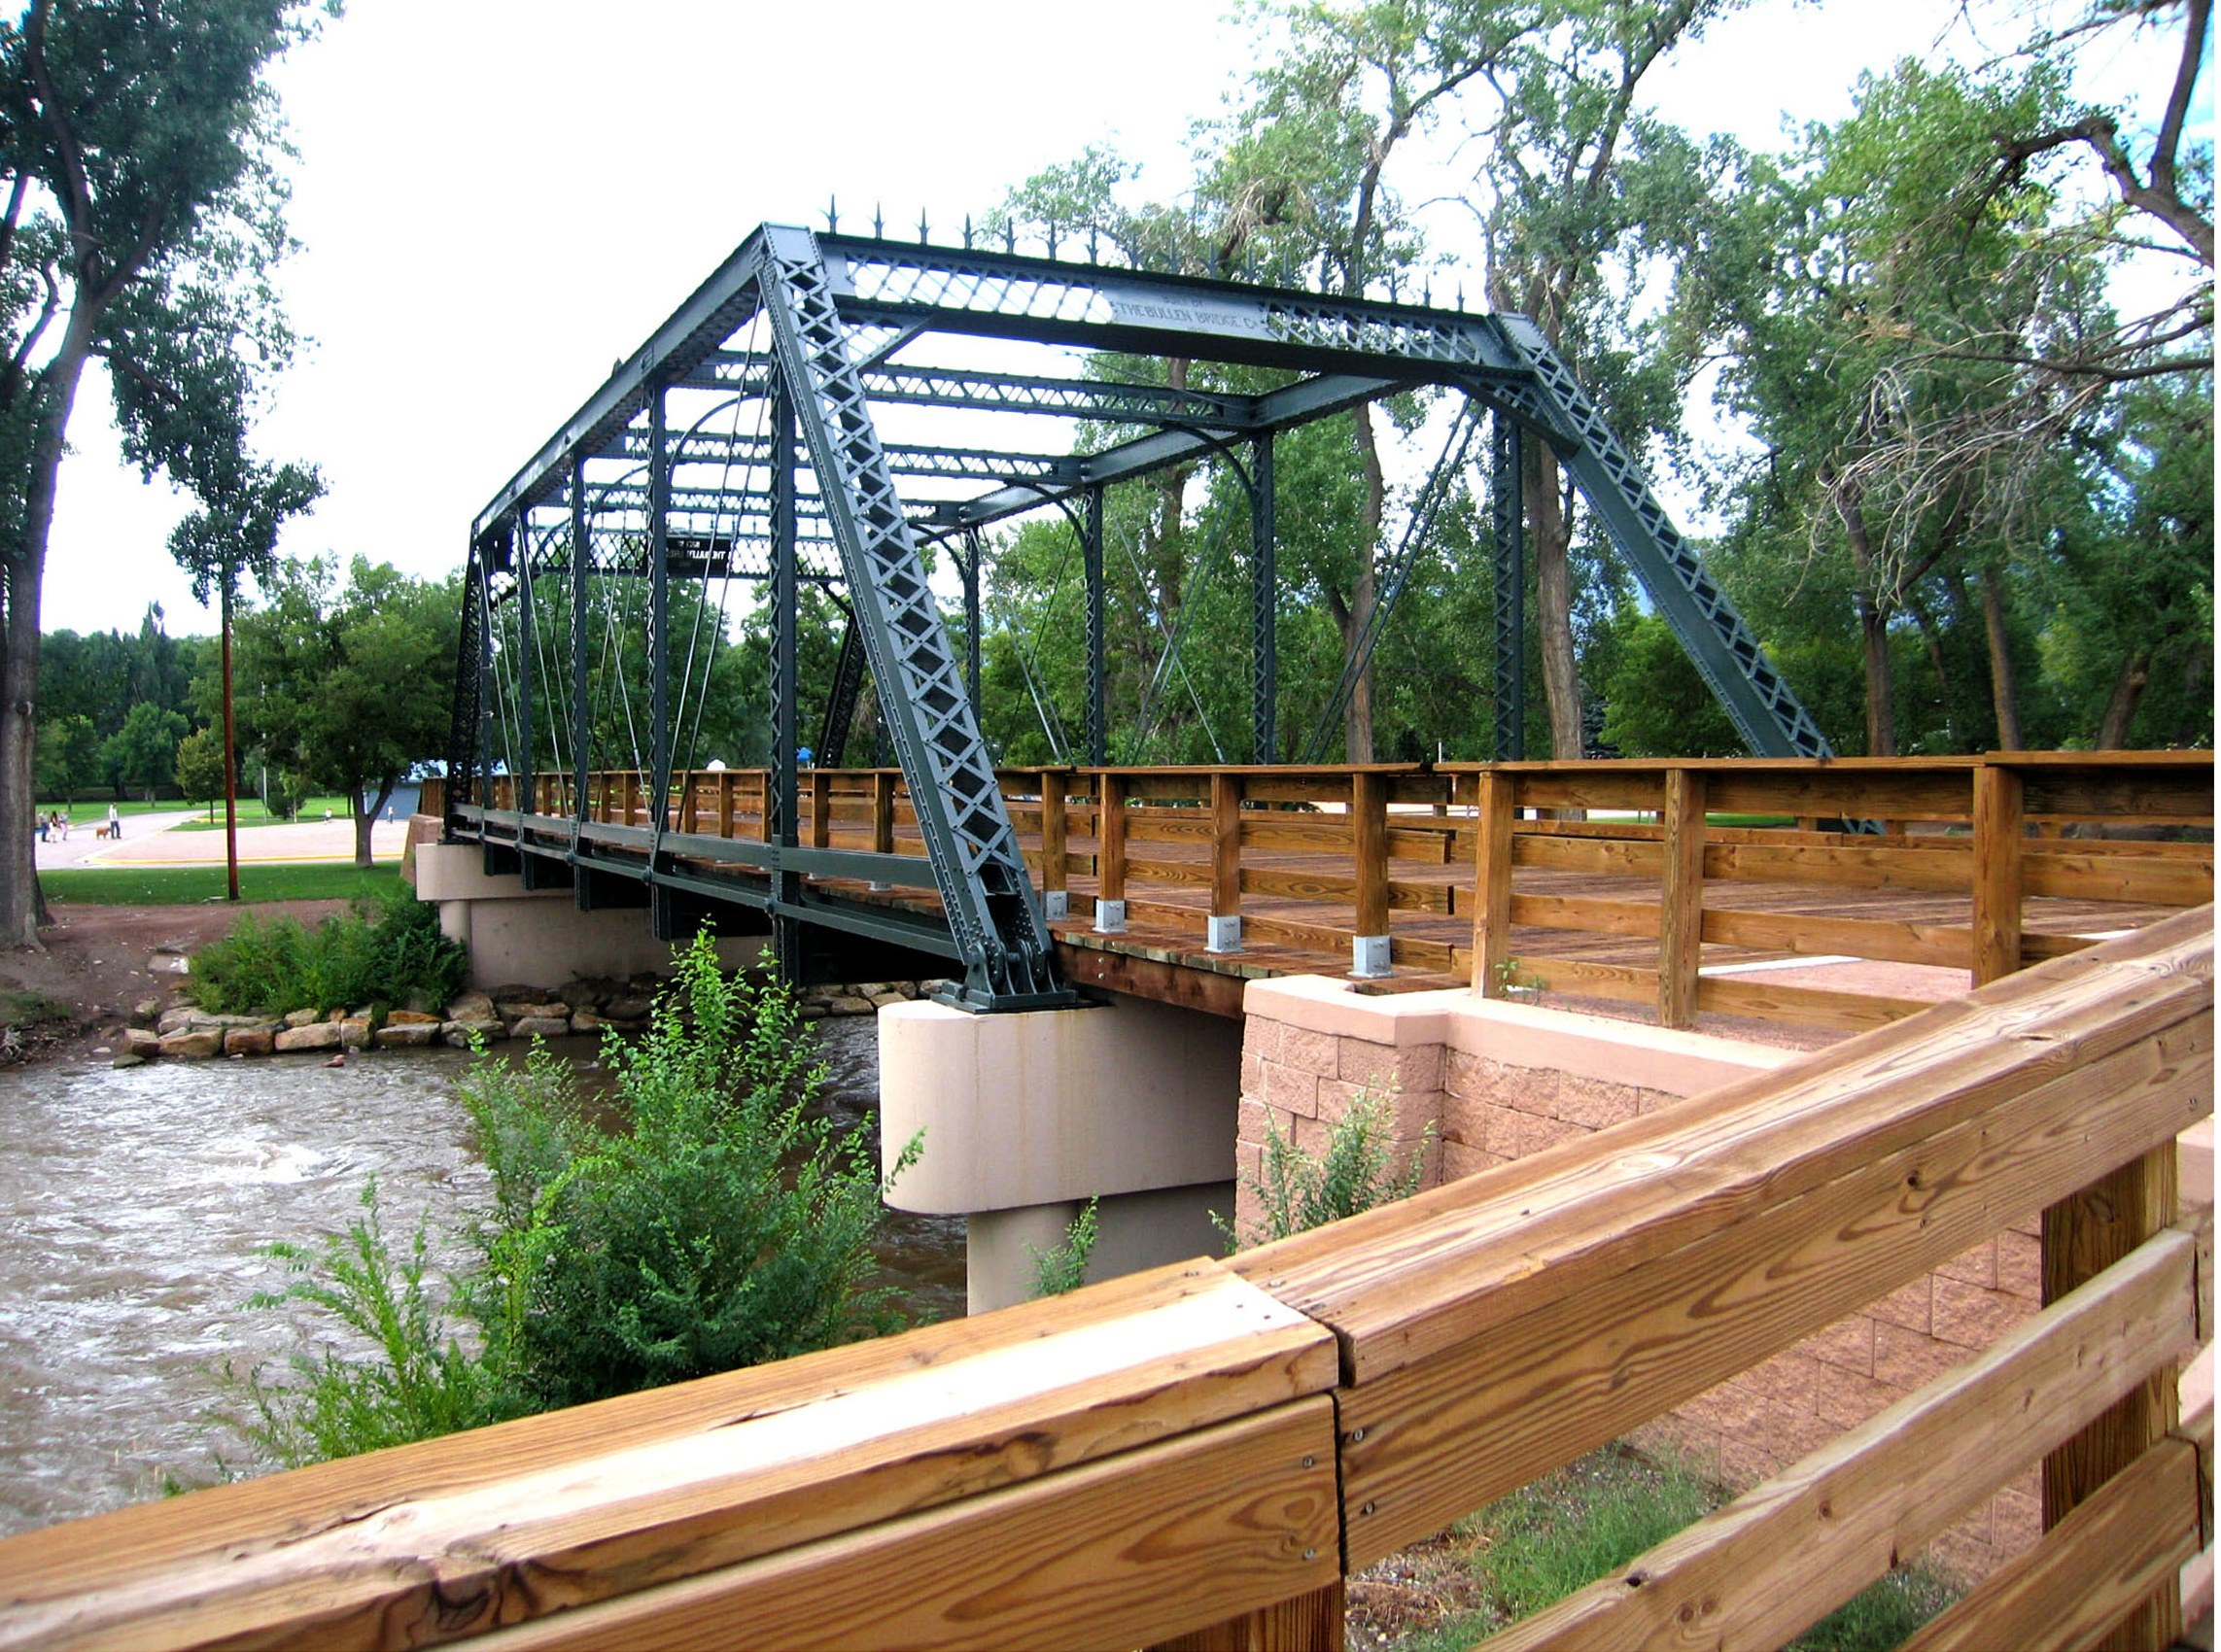 The historic Fourth Street Bridge was preserved and utilized as a walkway connecting the historic downtown with Centennial Park.